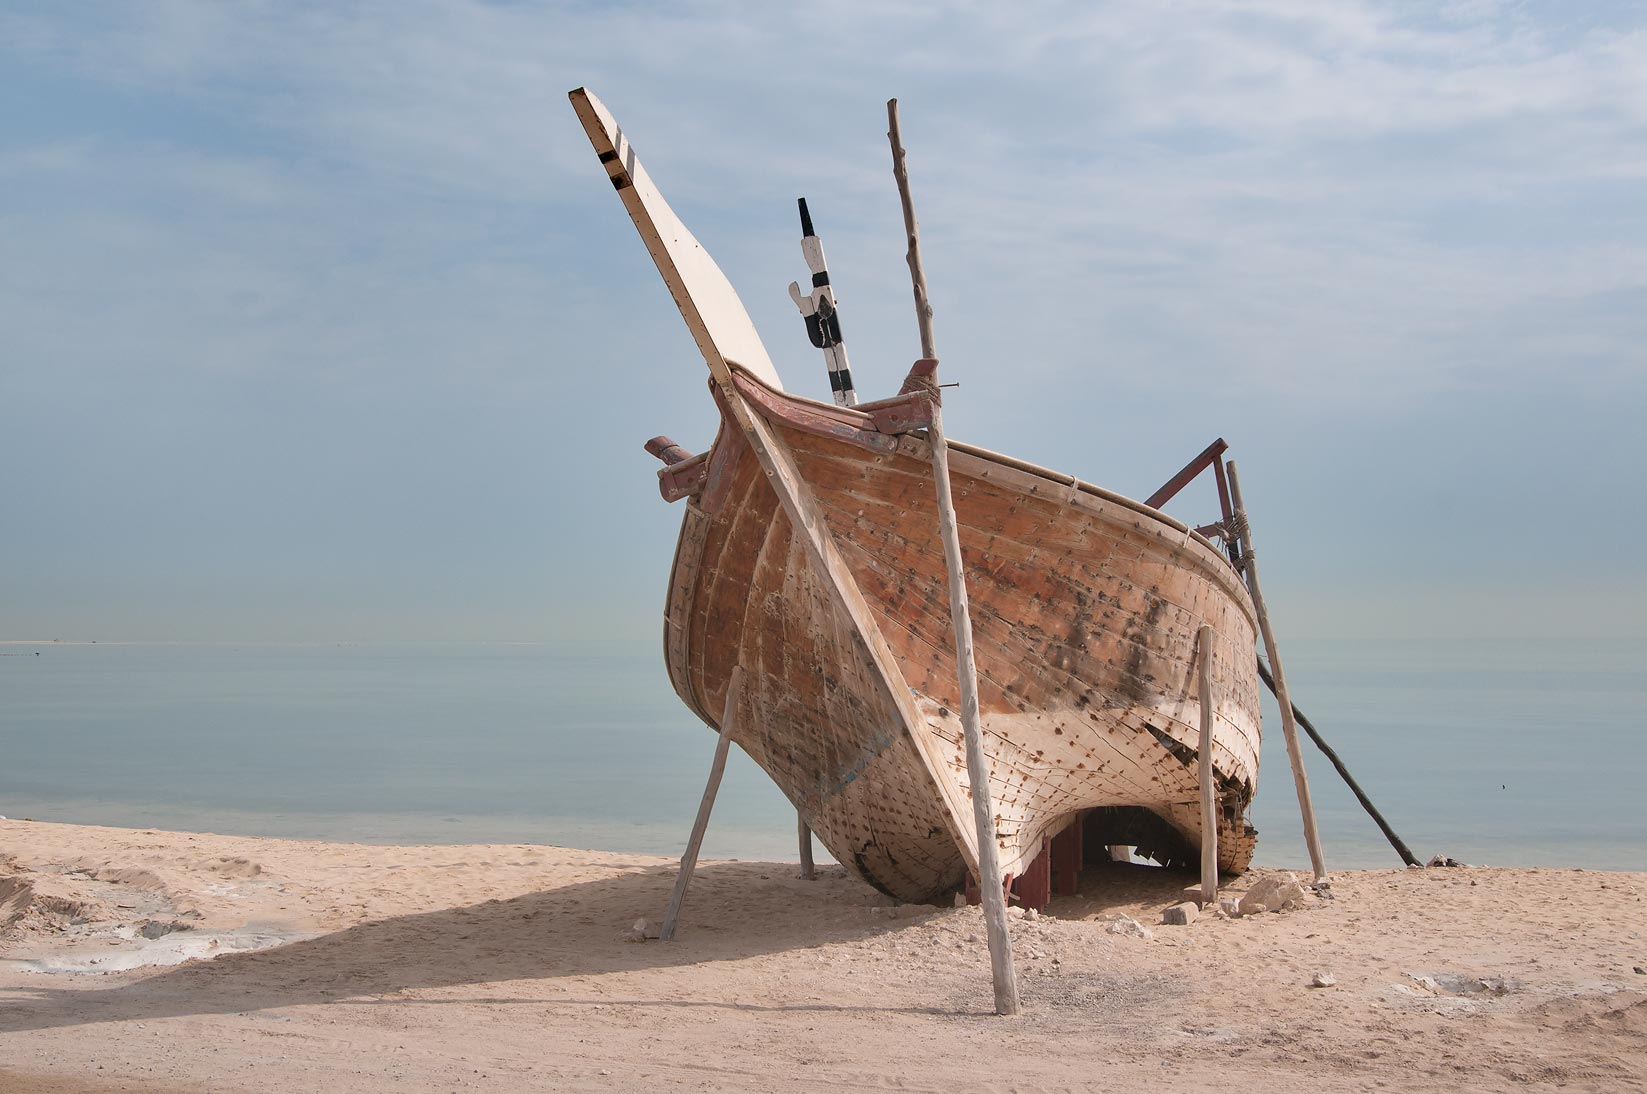 Beached dhow fishing boat. Al Wakrah, Qatar